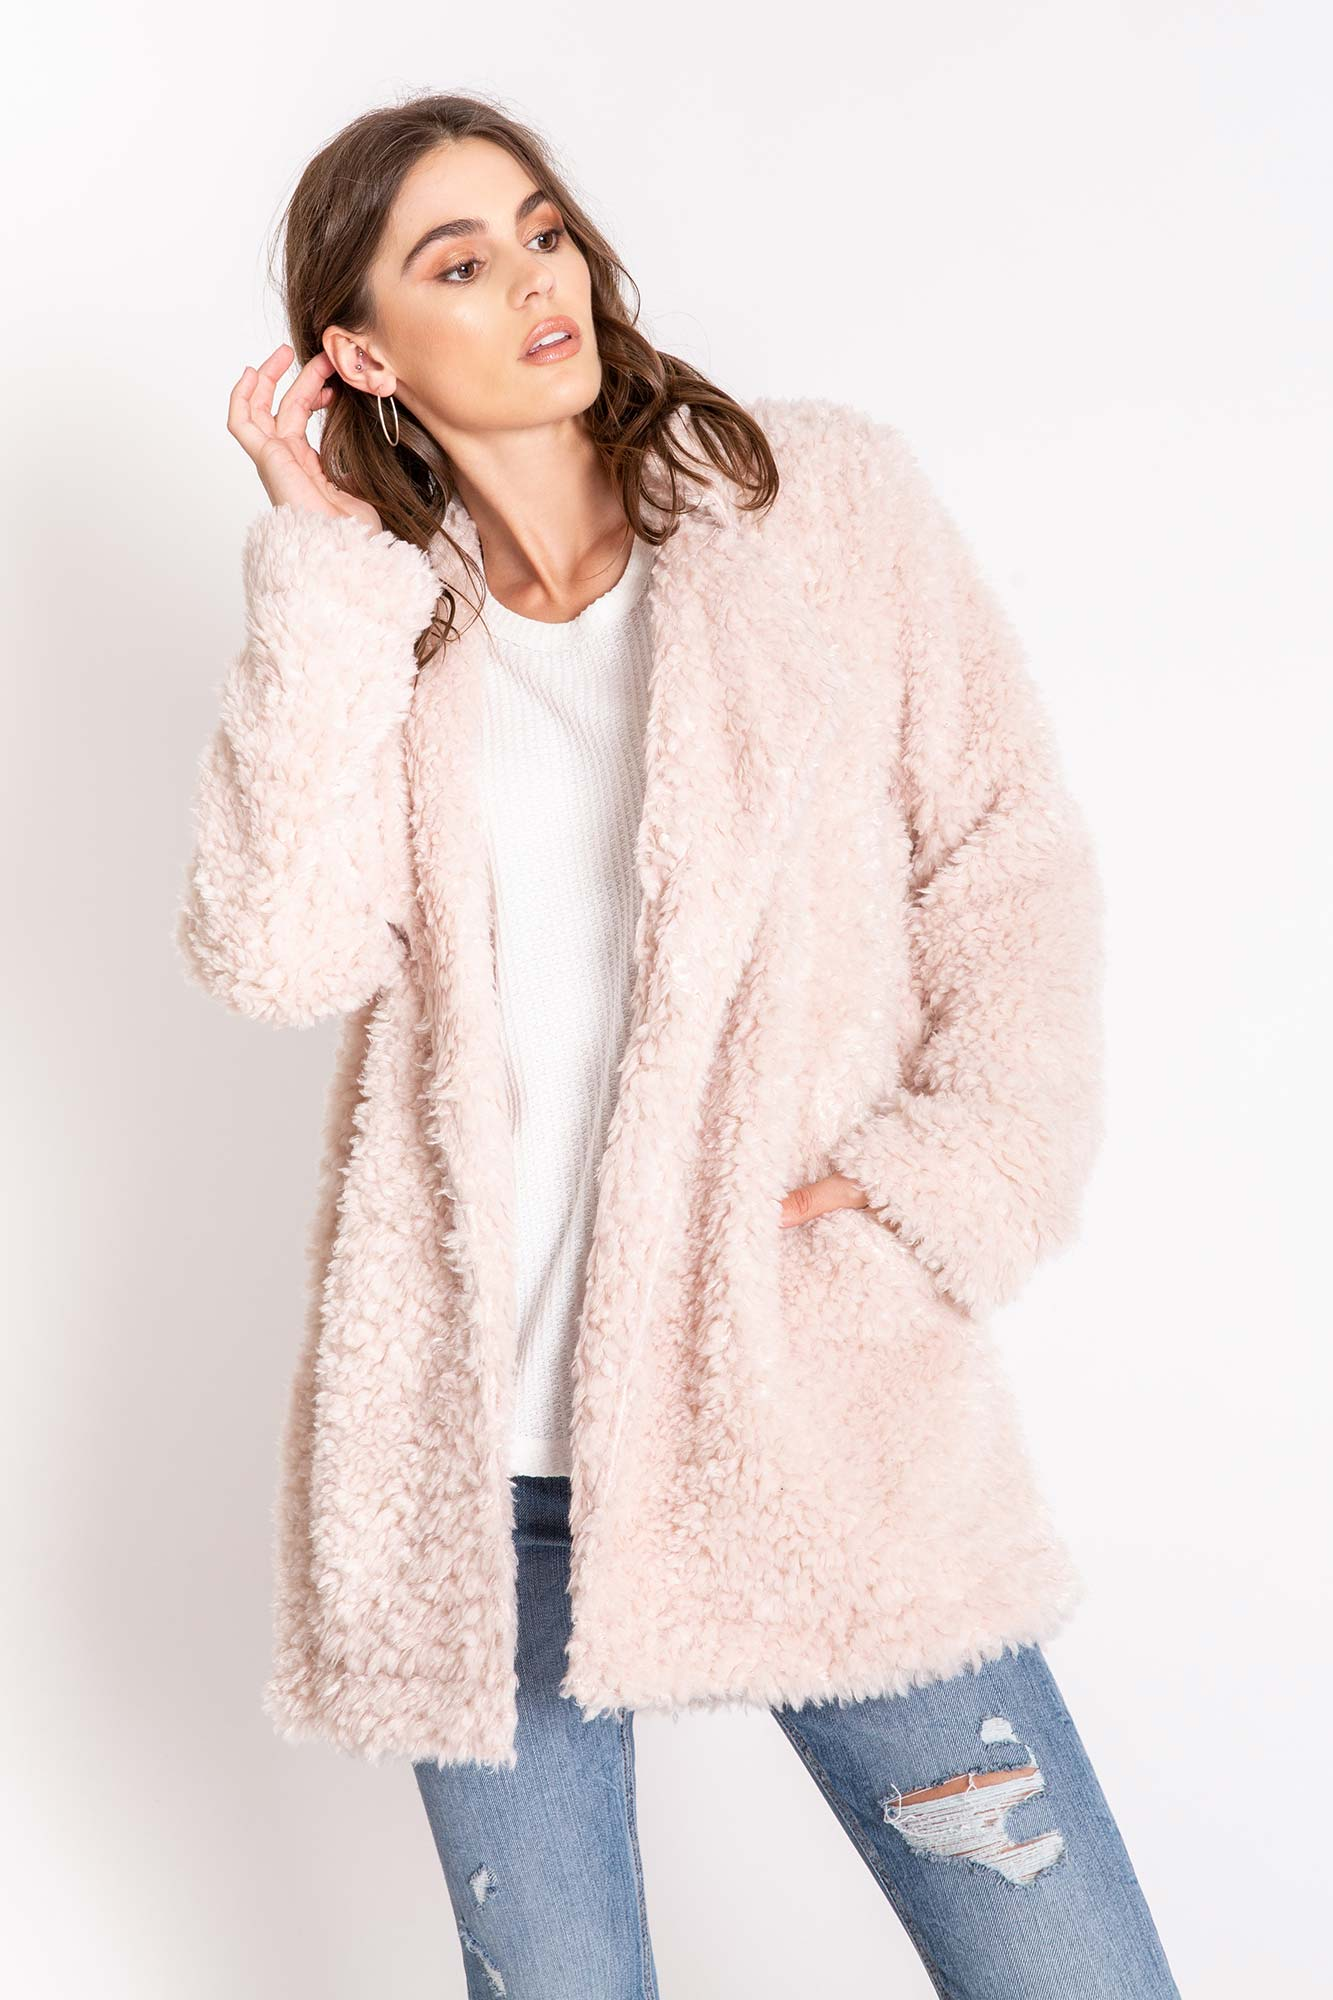 PJ Salvage Dusty Rose Women's Sherpa Cardigan